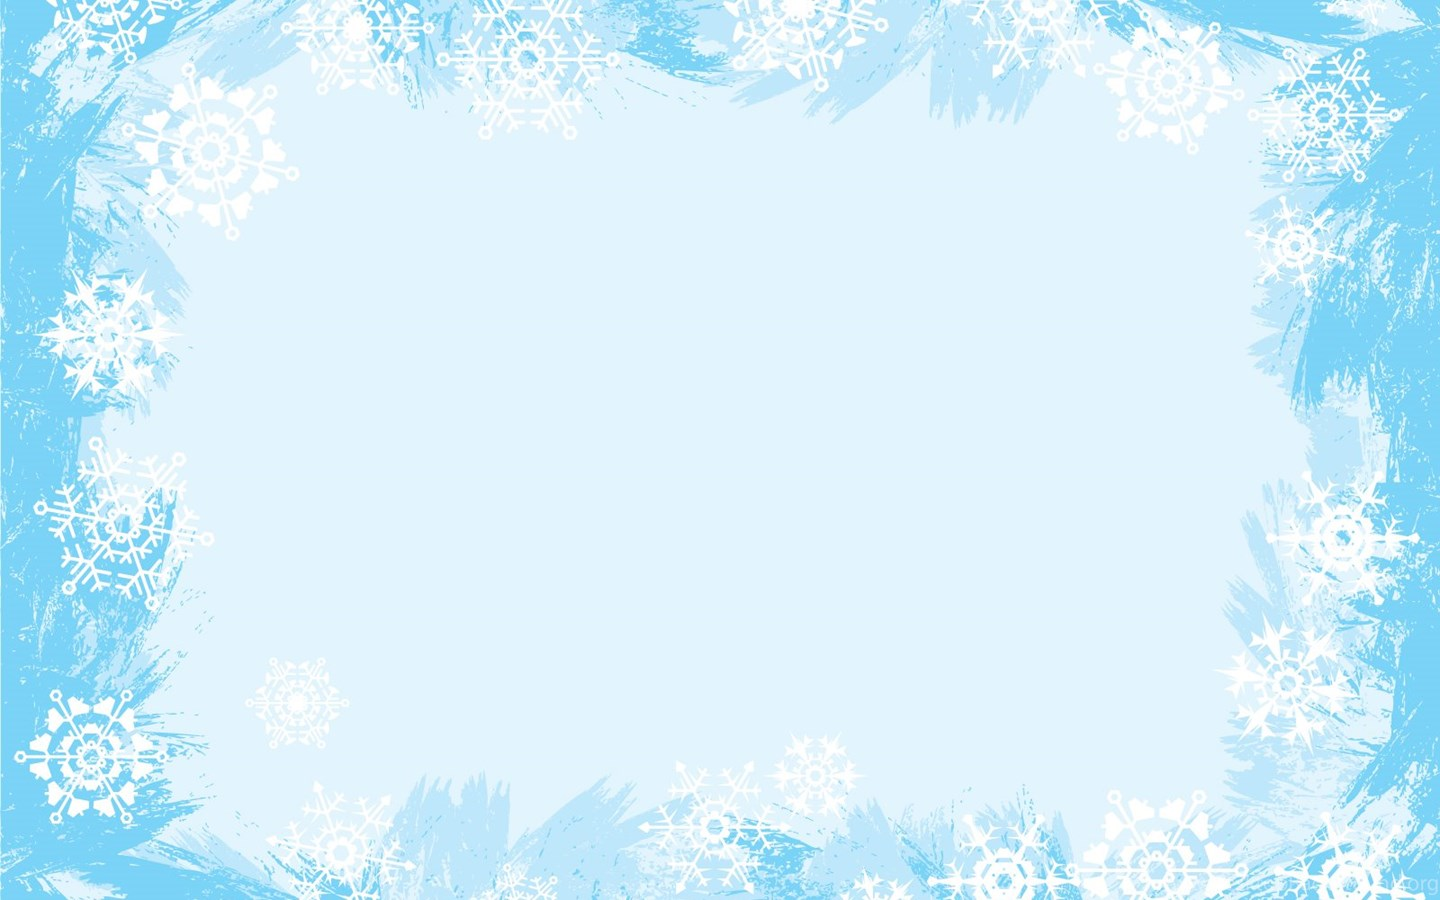 Light Blue Colourful Backgrounds